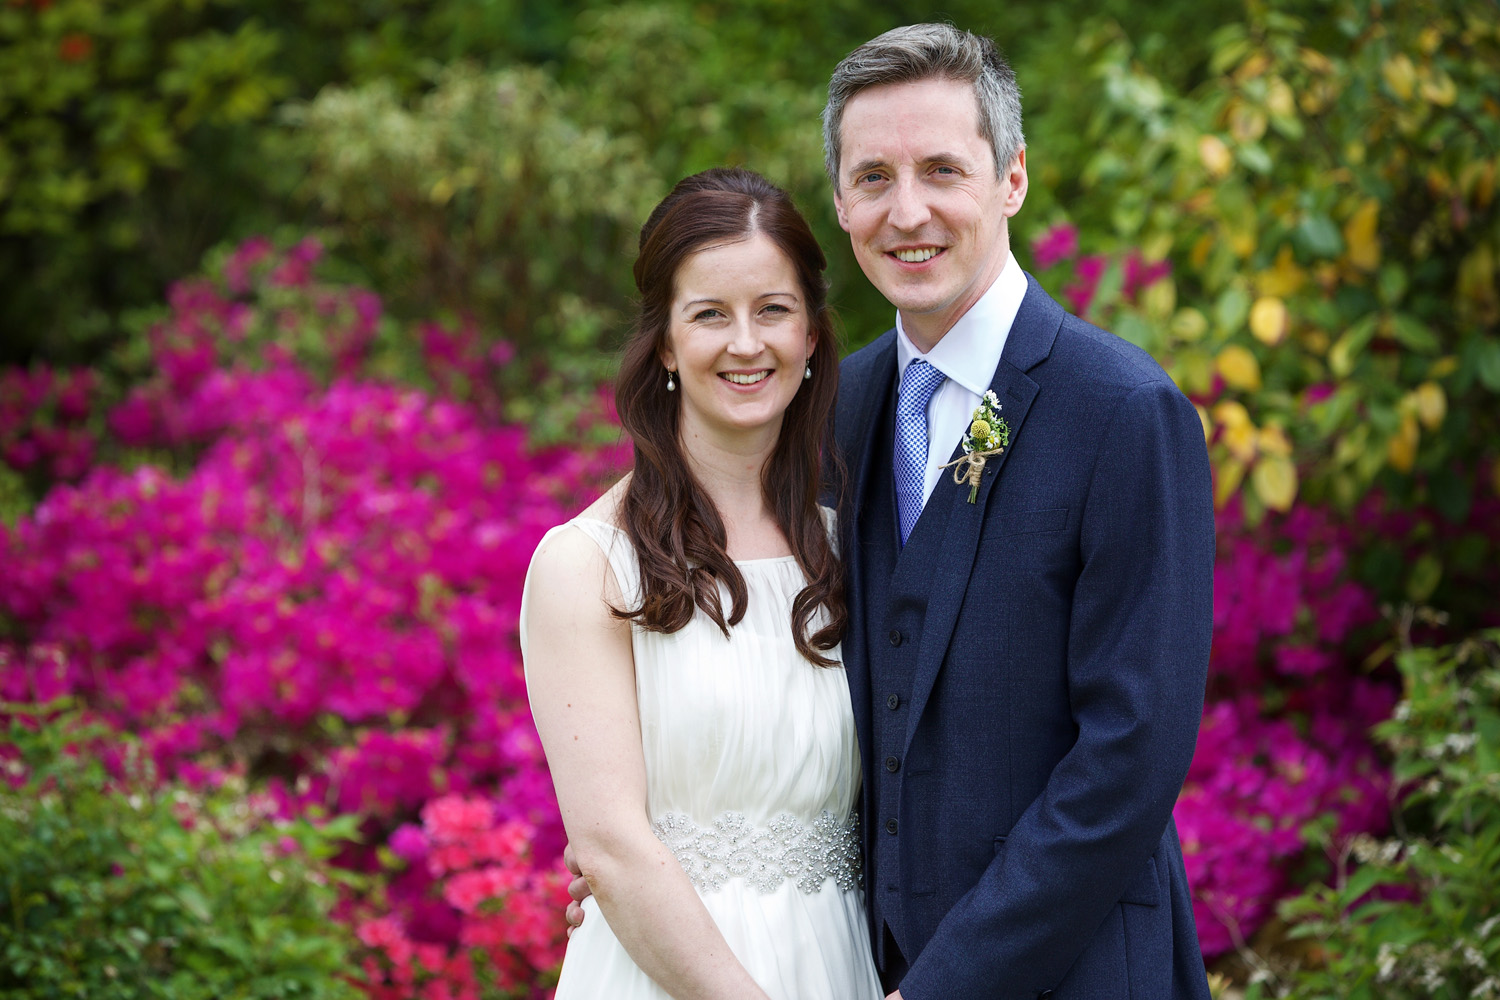 The_Vineyard_Hotel_Wedding_Photographer_Newbury_Berkshire_099.jpg